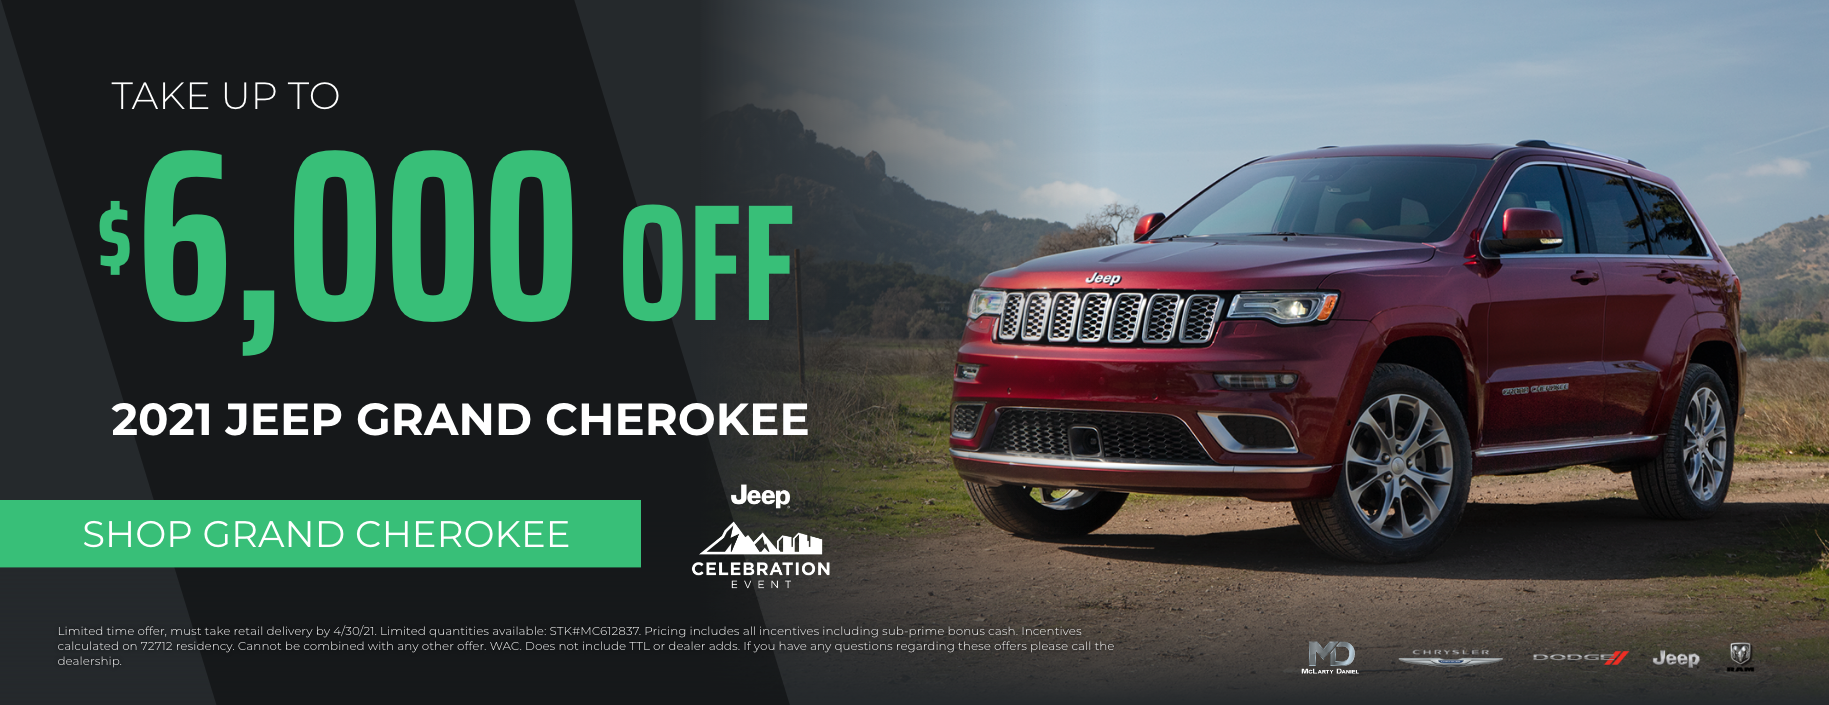 Take up to $6000 off 2021 Jeep Grand Cherokee